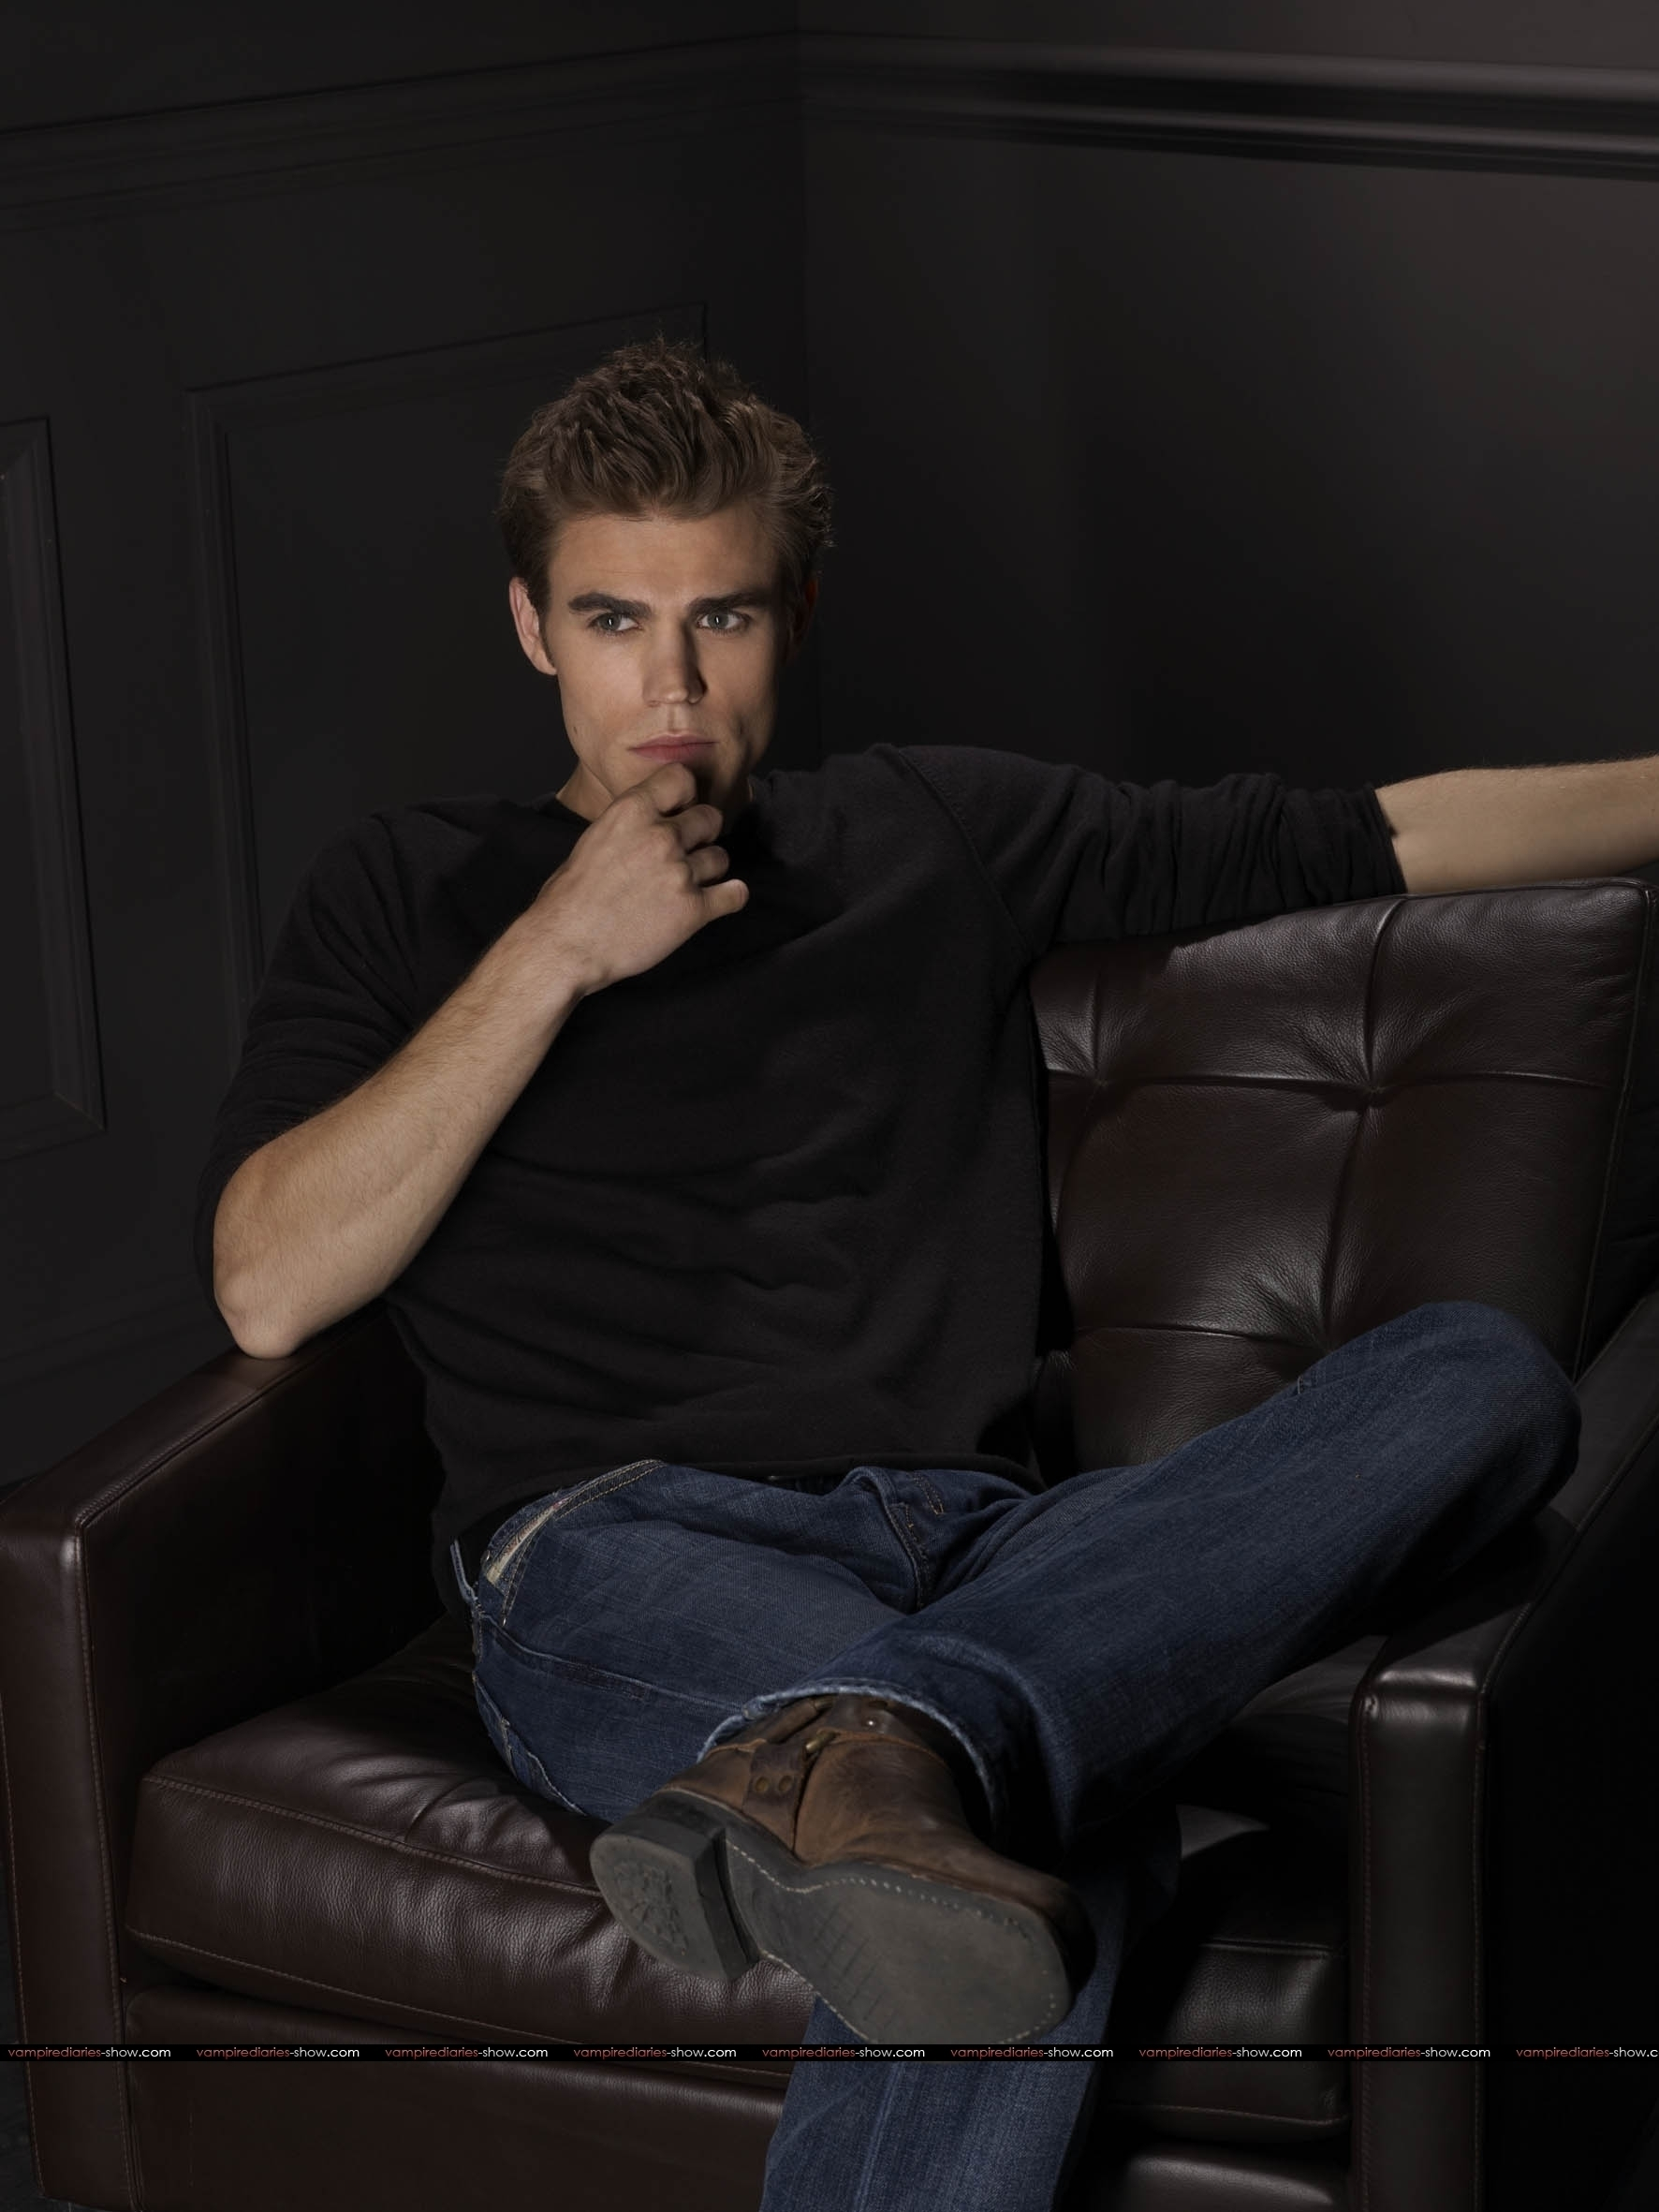 http://razipic.persiangig.com/image/Promo-photoshoot-paul-wesley-10008655-1772-2362.jpg